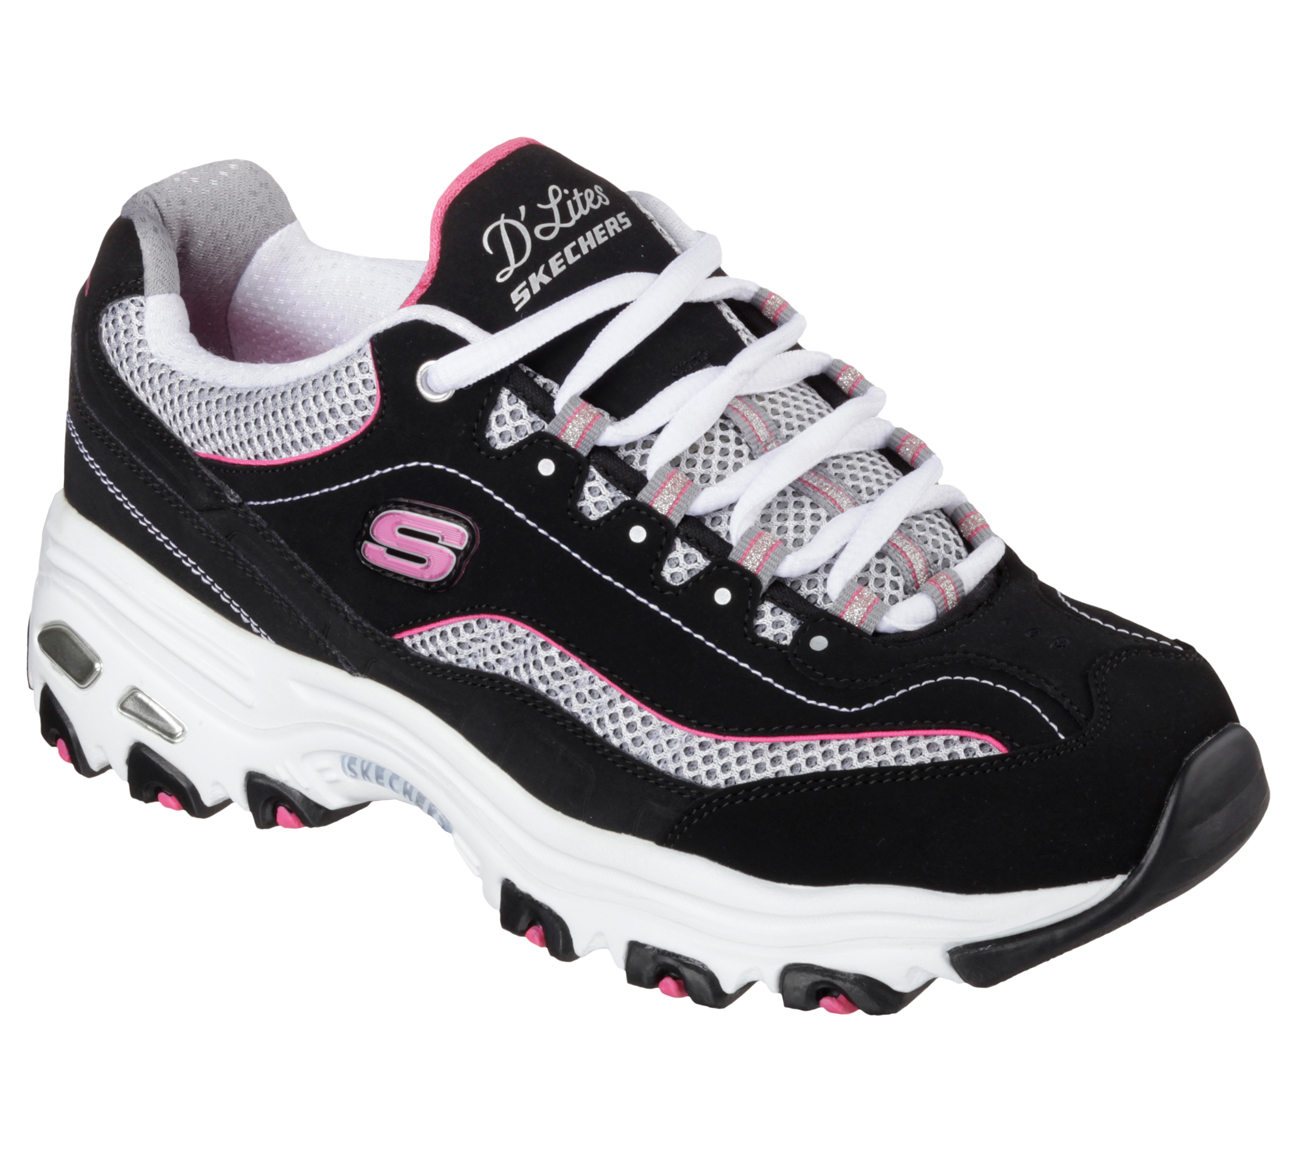 Buy SKECHERS D'lites - Life Saver D'Lites Shoes only $65.00